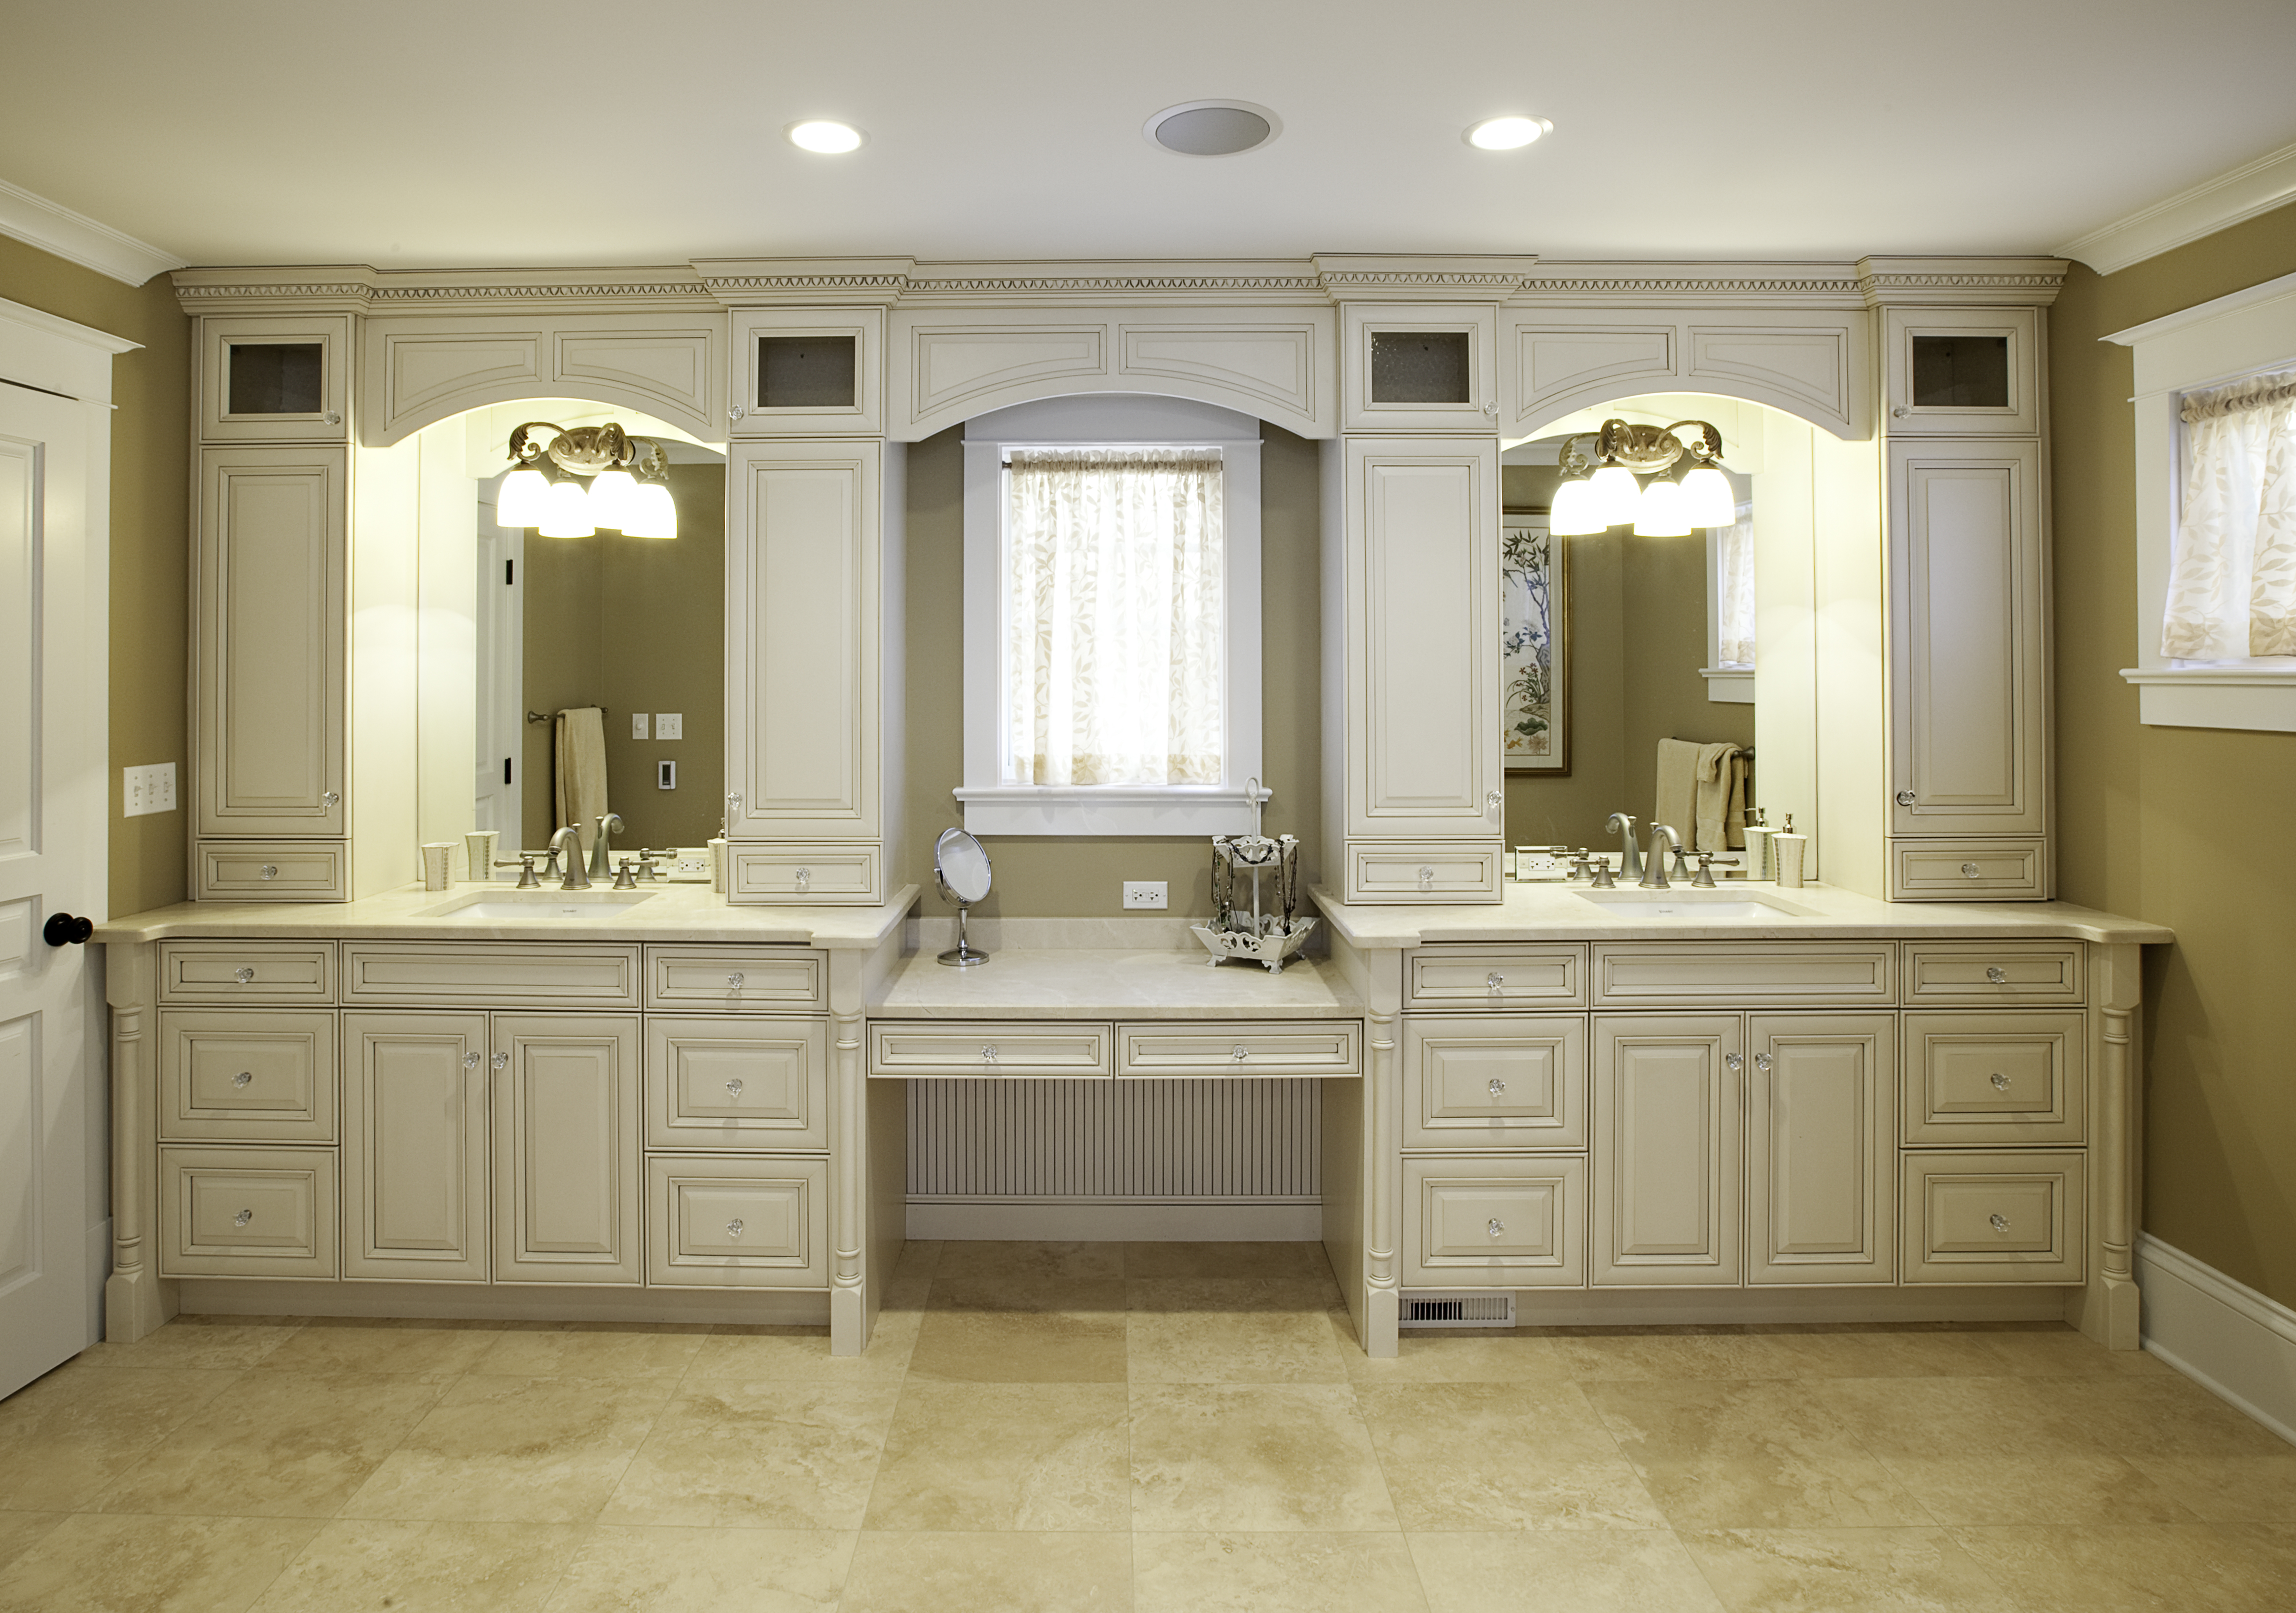 Bathroom Cabinetry you can look affordable bathroom vanities you can look bathroom vanities and cabinets you can look best bathroom vanities